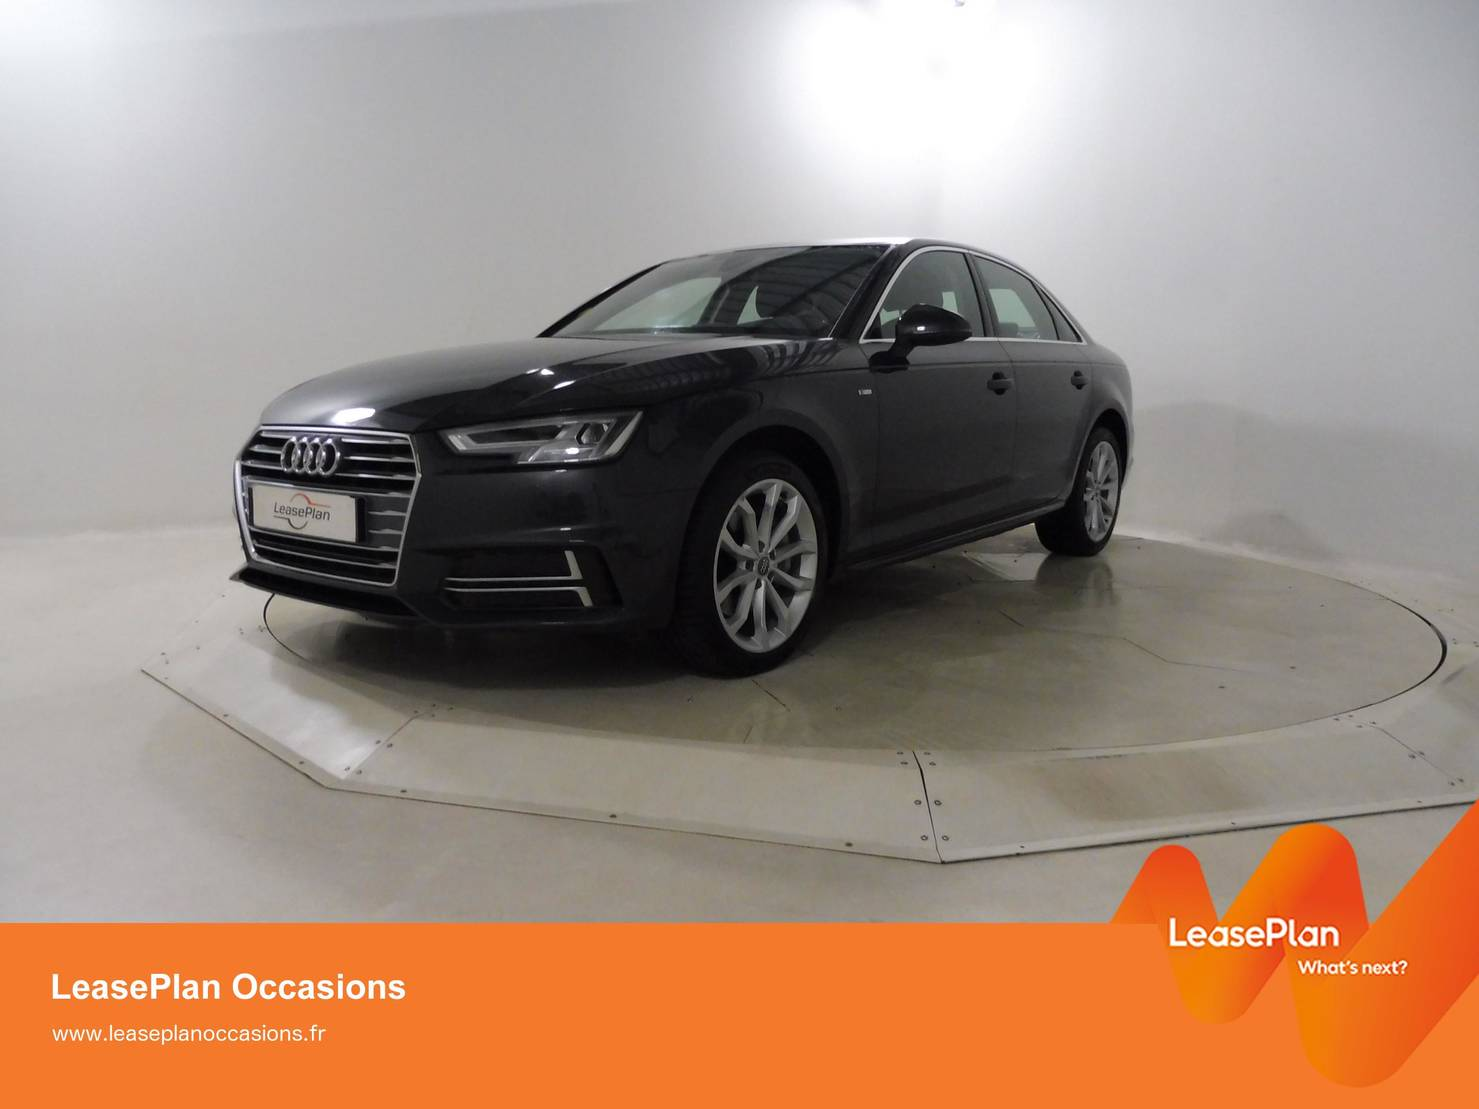 Audi A4 2.0 TDI 190 S tronic 7, Design Luxe detail1